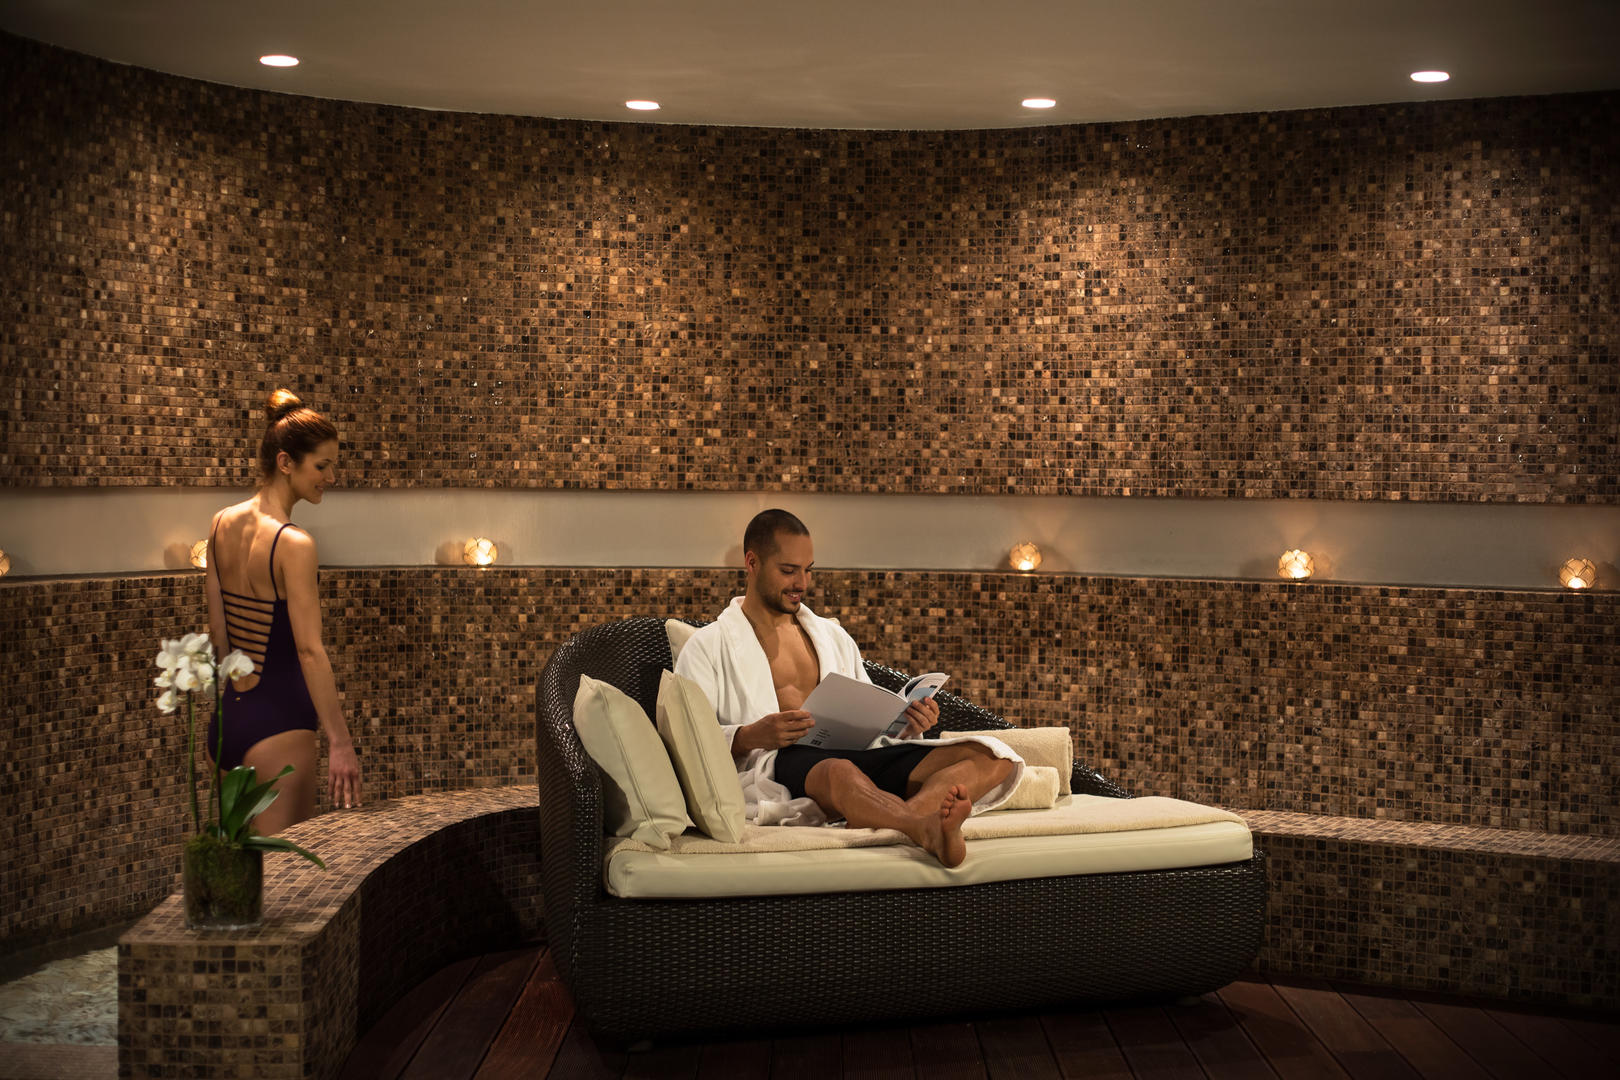 Corinthia_lisbon_ultimatives Spa_Acqua_Couple